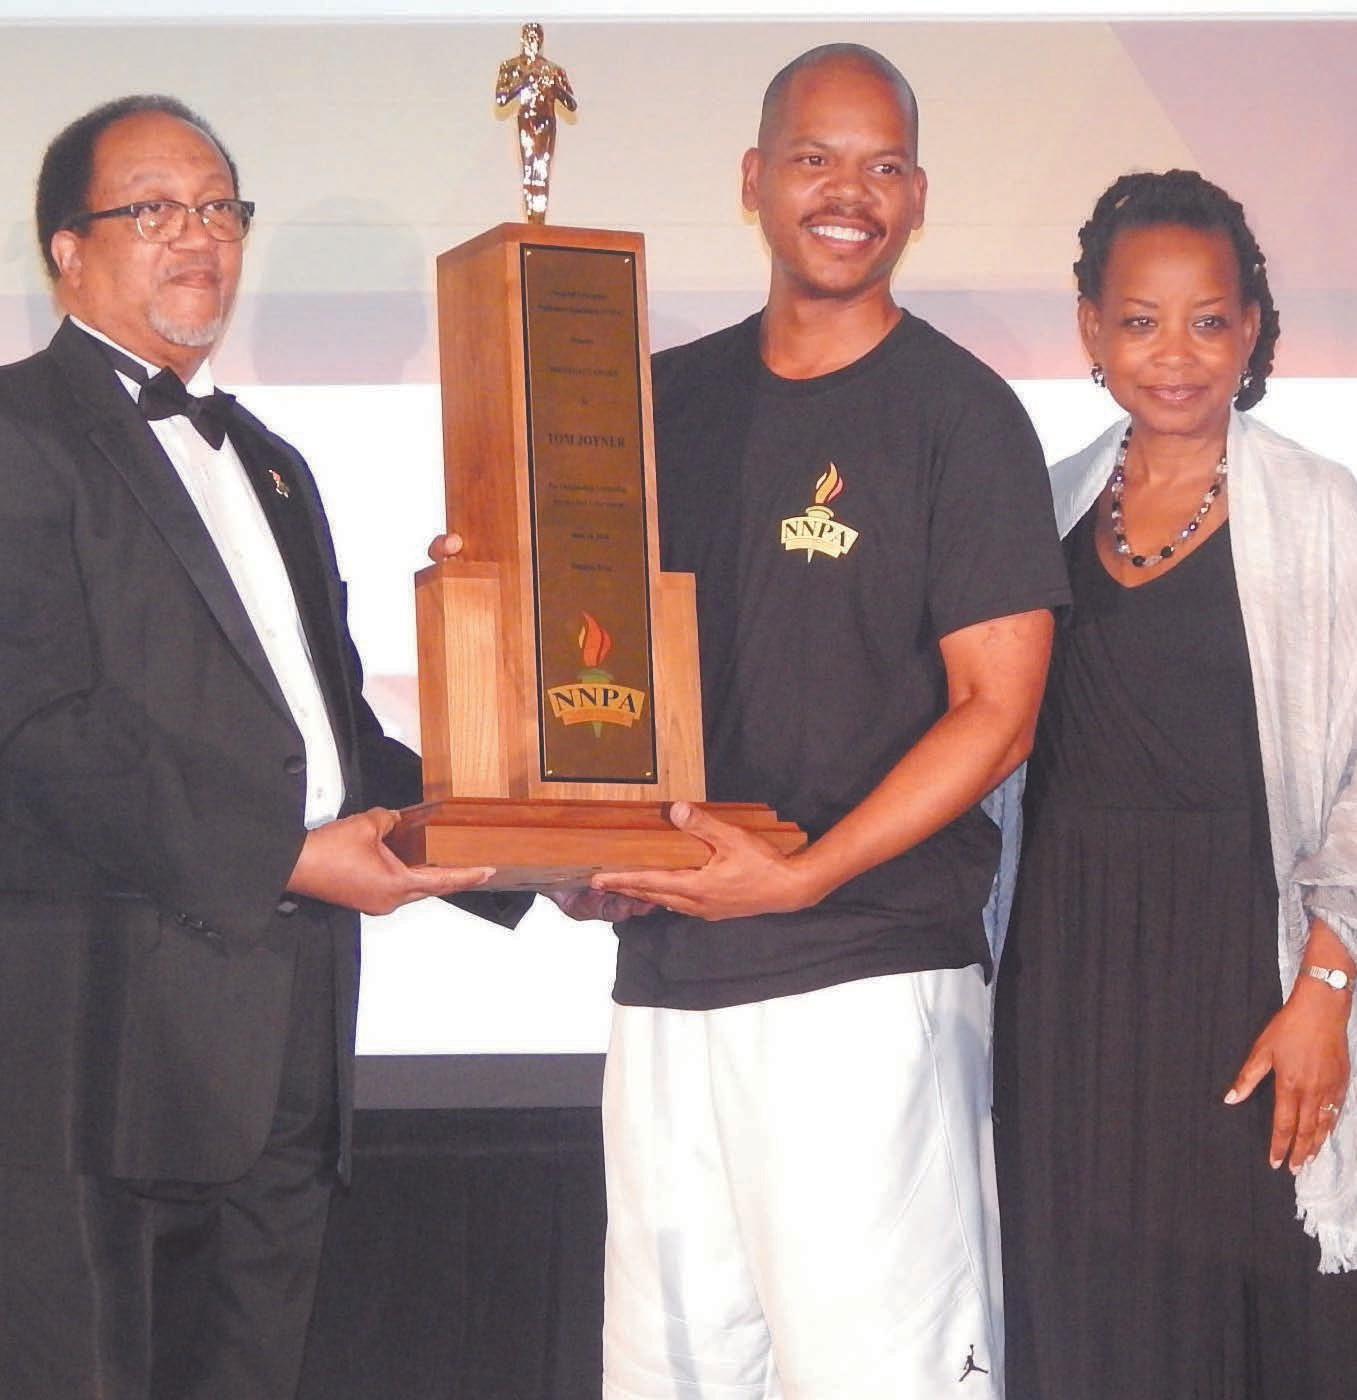 Oscar Joyner accepting the Legacy Award on behalf of his father, Tom Joyner presented by Dr. Ben Chavis and NNPA Chairman Denise Rolark-Barnes